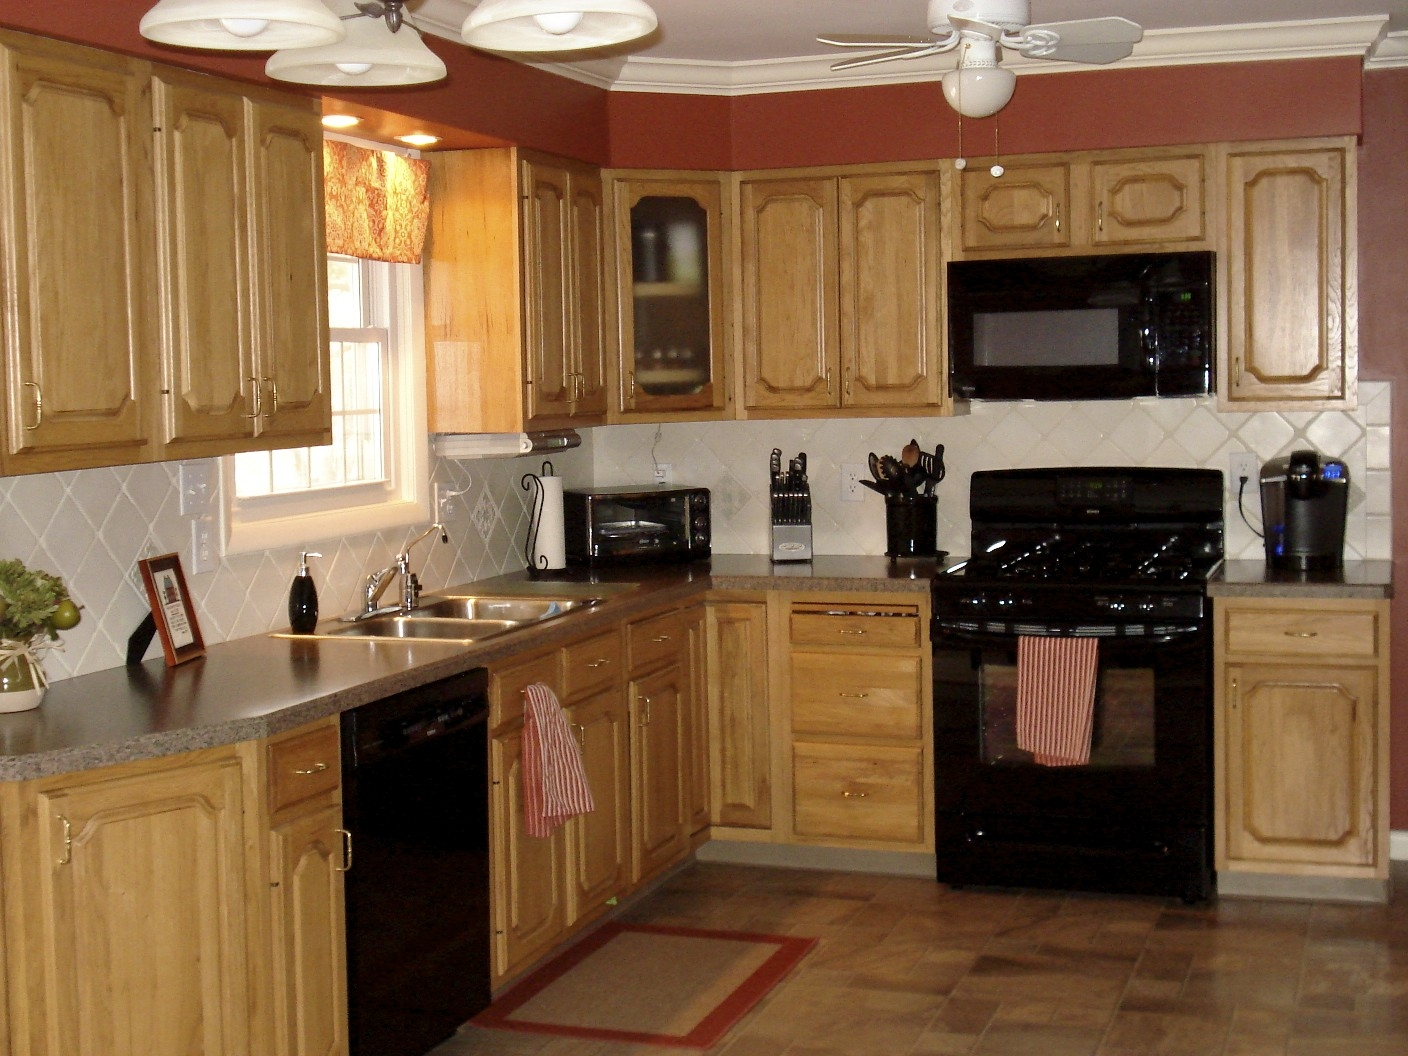 Light Kitchen Cabinets With Black Appliances